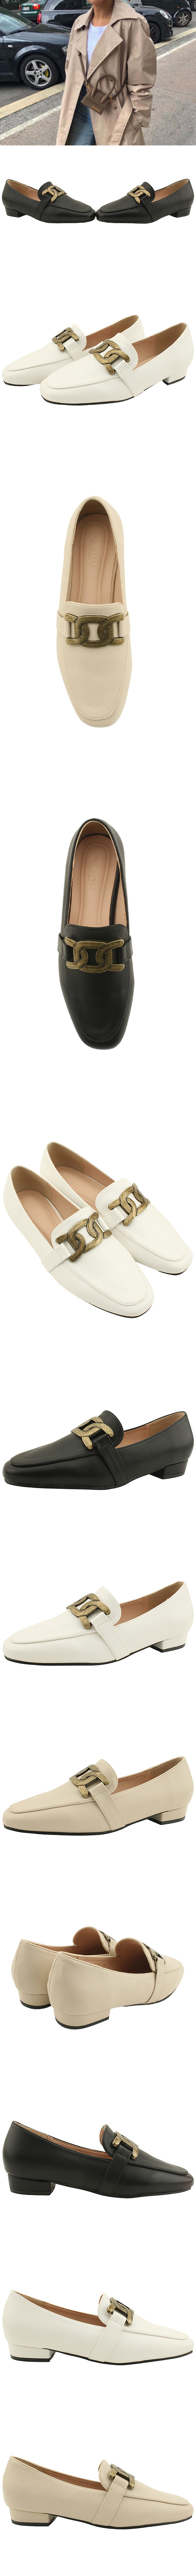 Dong chain classic low heel loafers beige